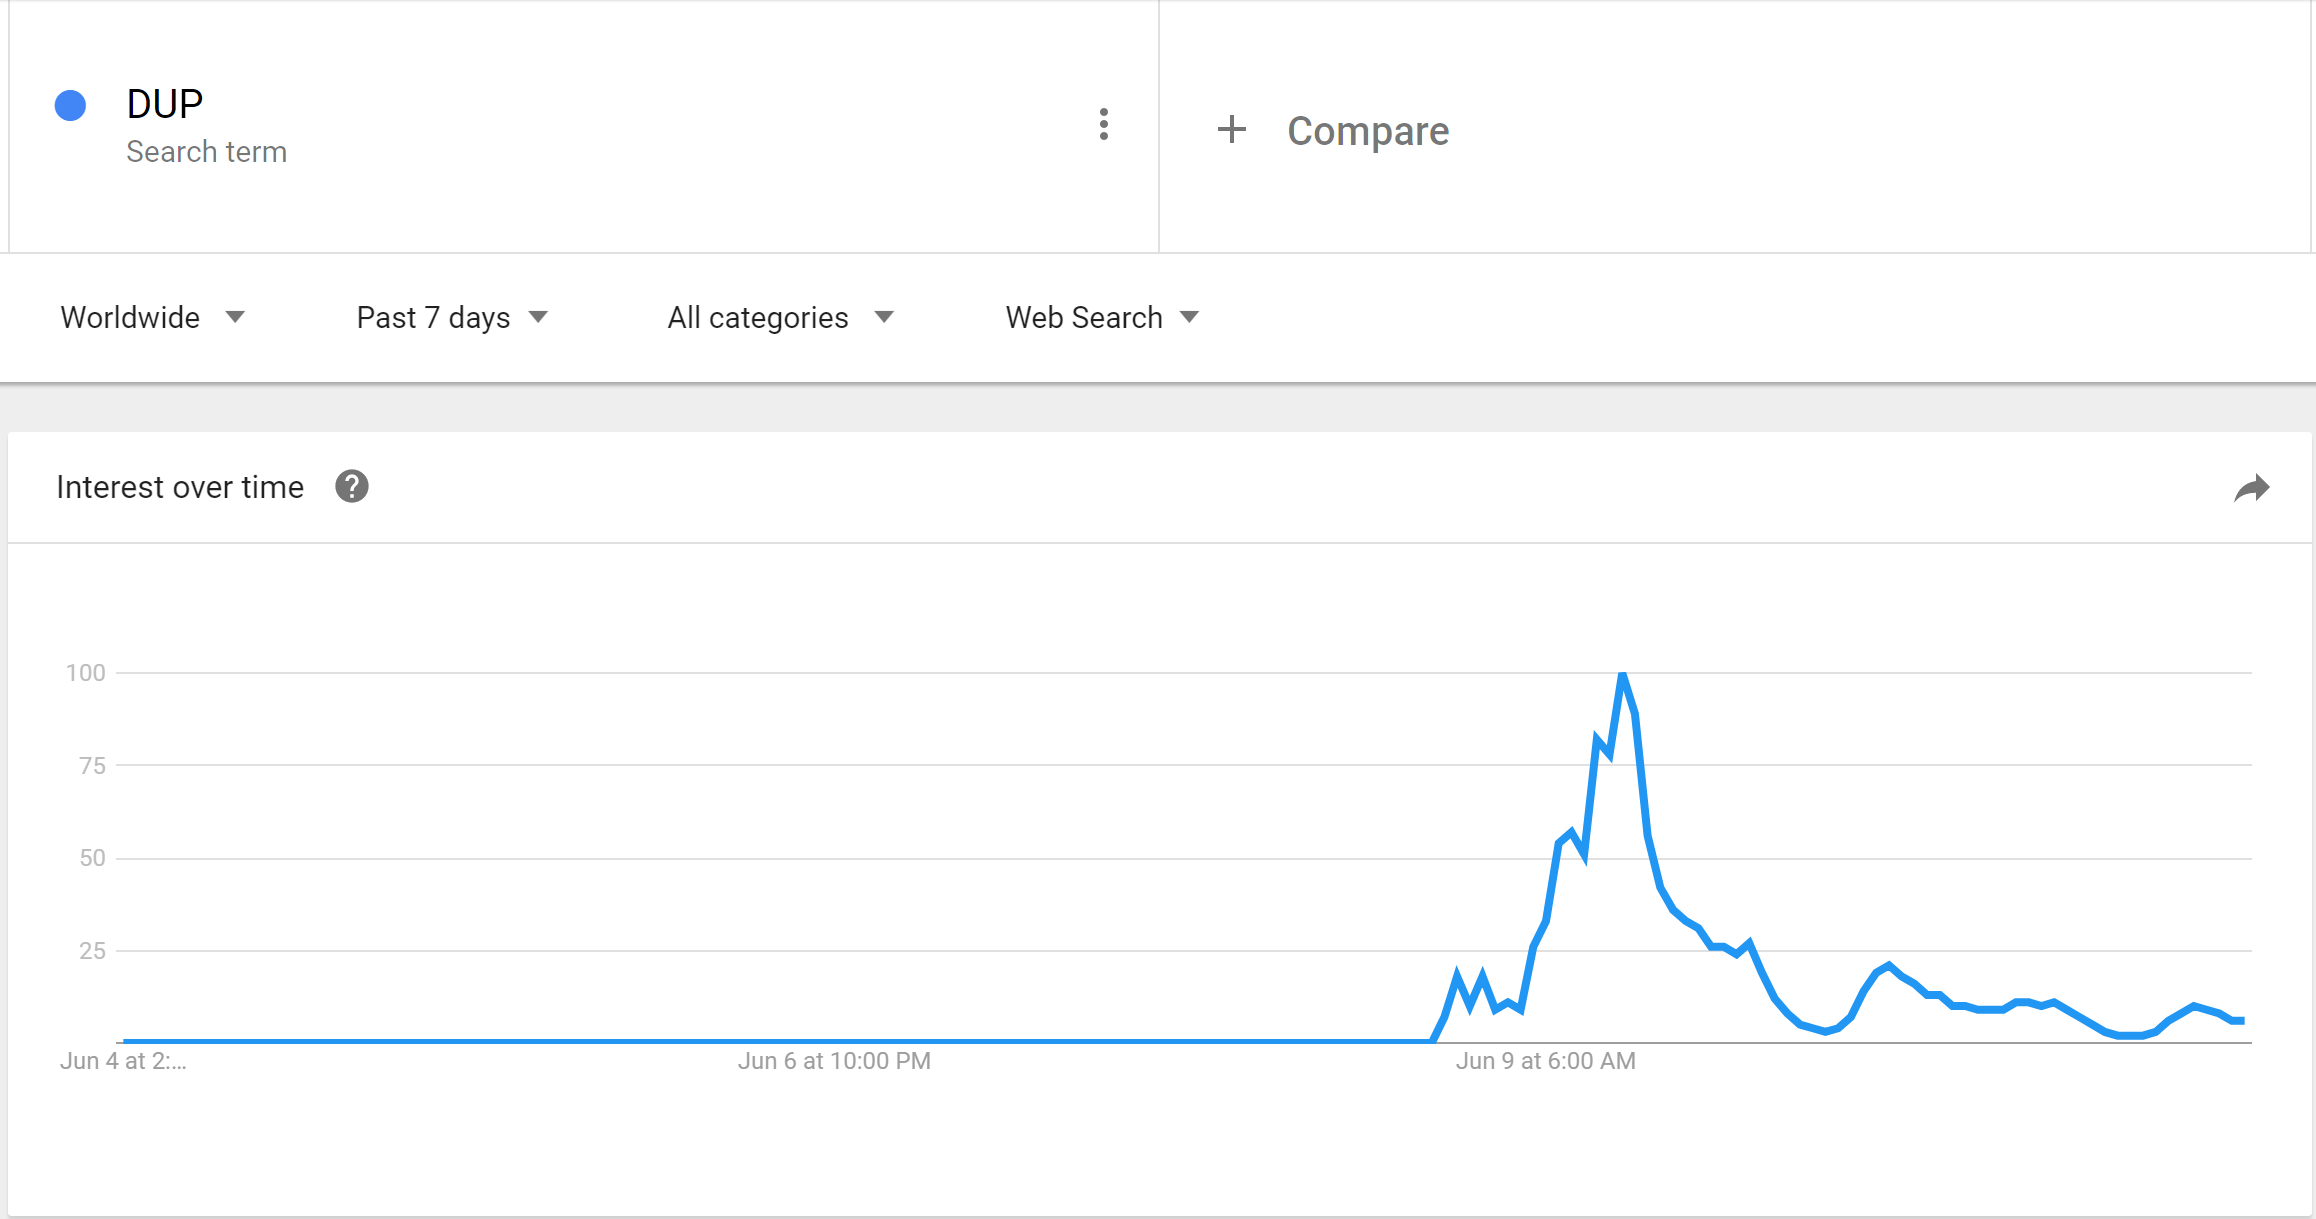 Interest in DUP over time